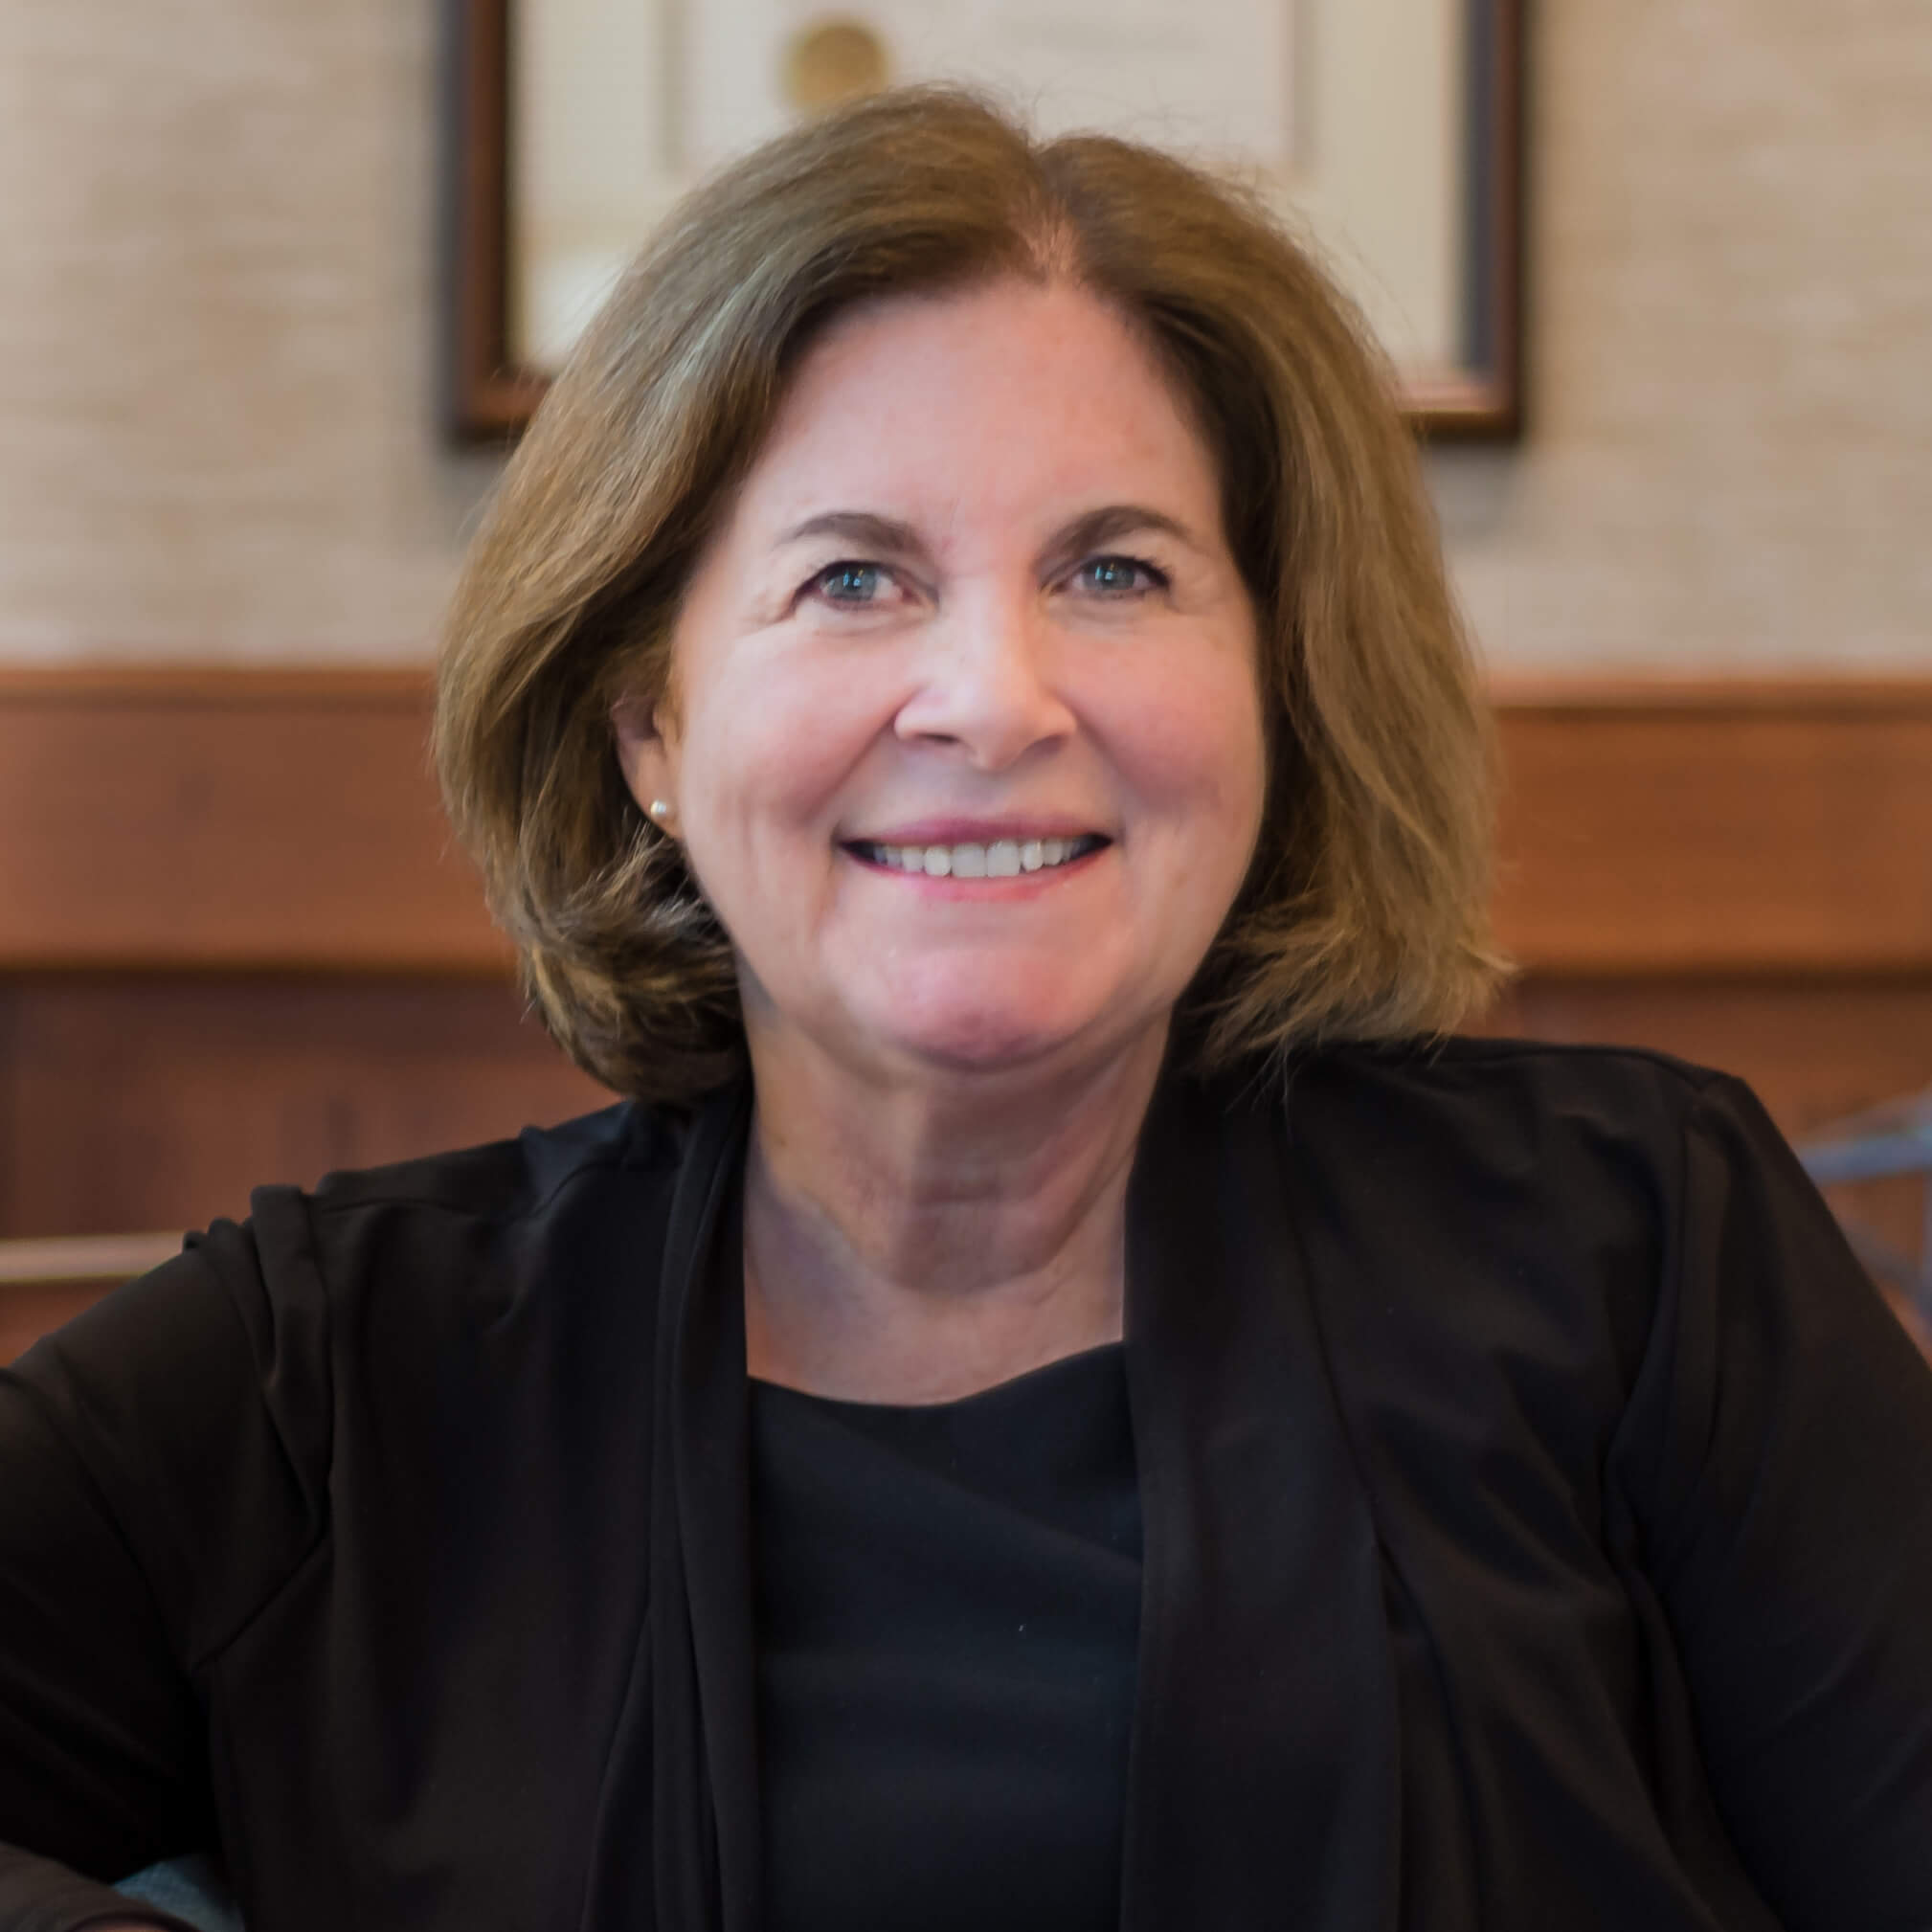 Photo of Esther George, president and CEO of the Federal Reserve Bank of Kansas City